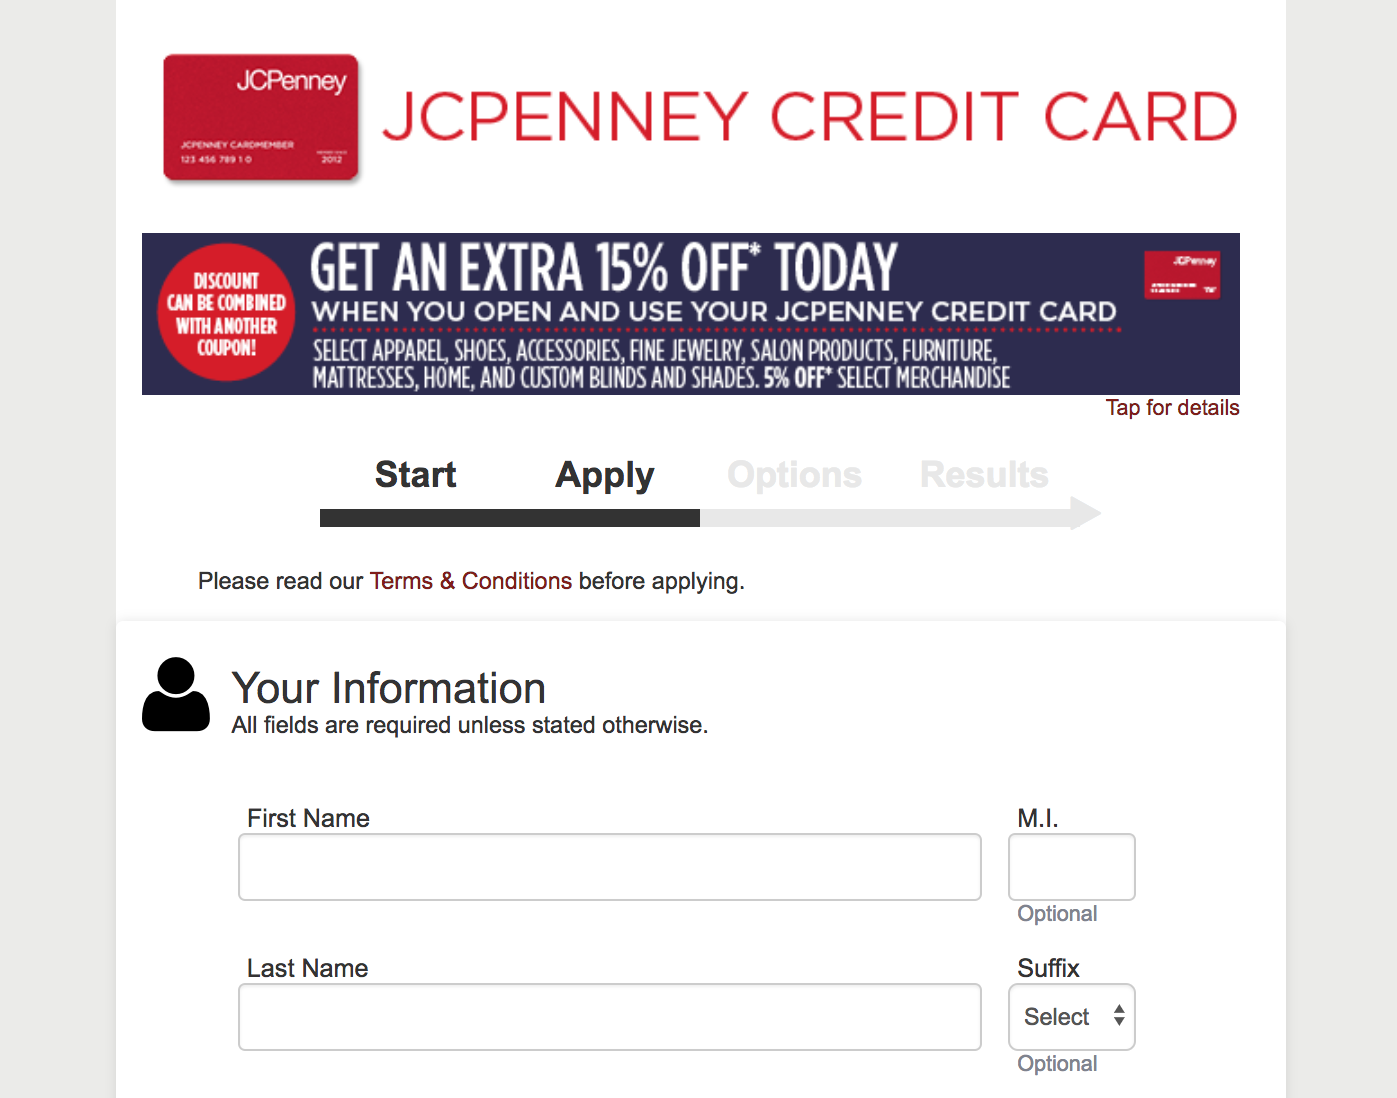 Applying For The JCPenney Card